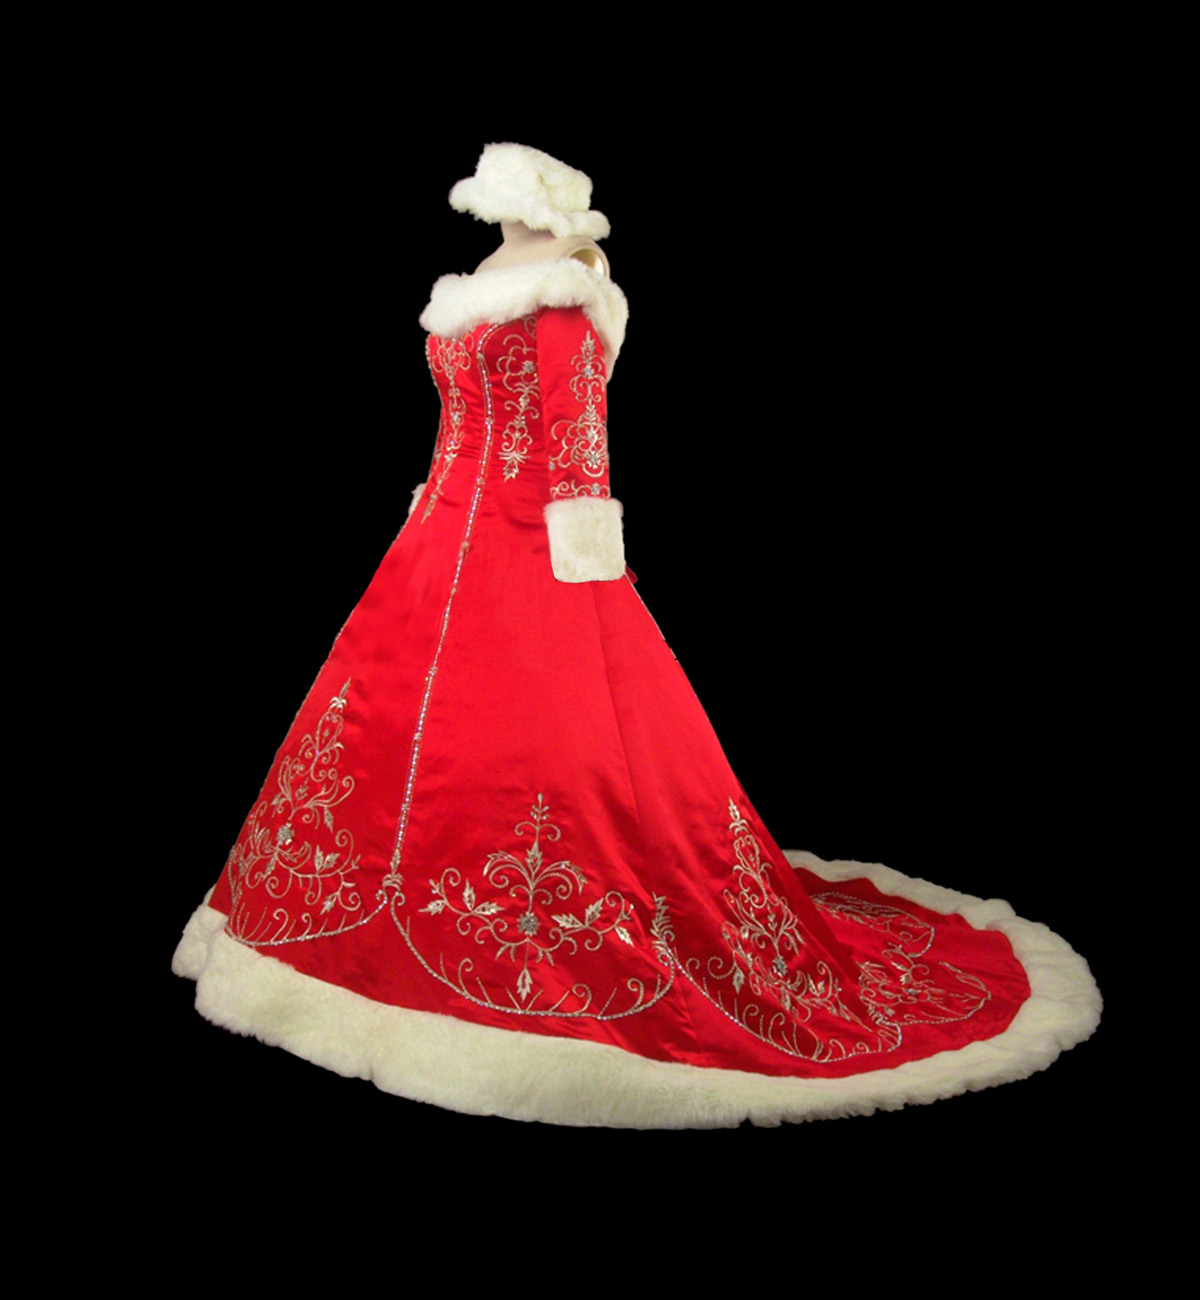 New Christmas Clothes Designs 2014 , Christmas Dresses for women 2014